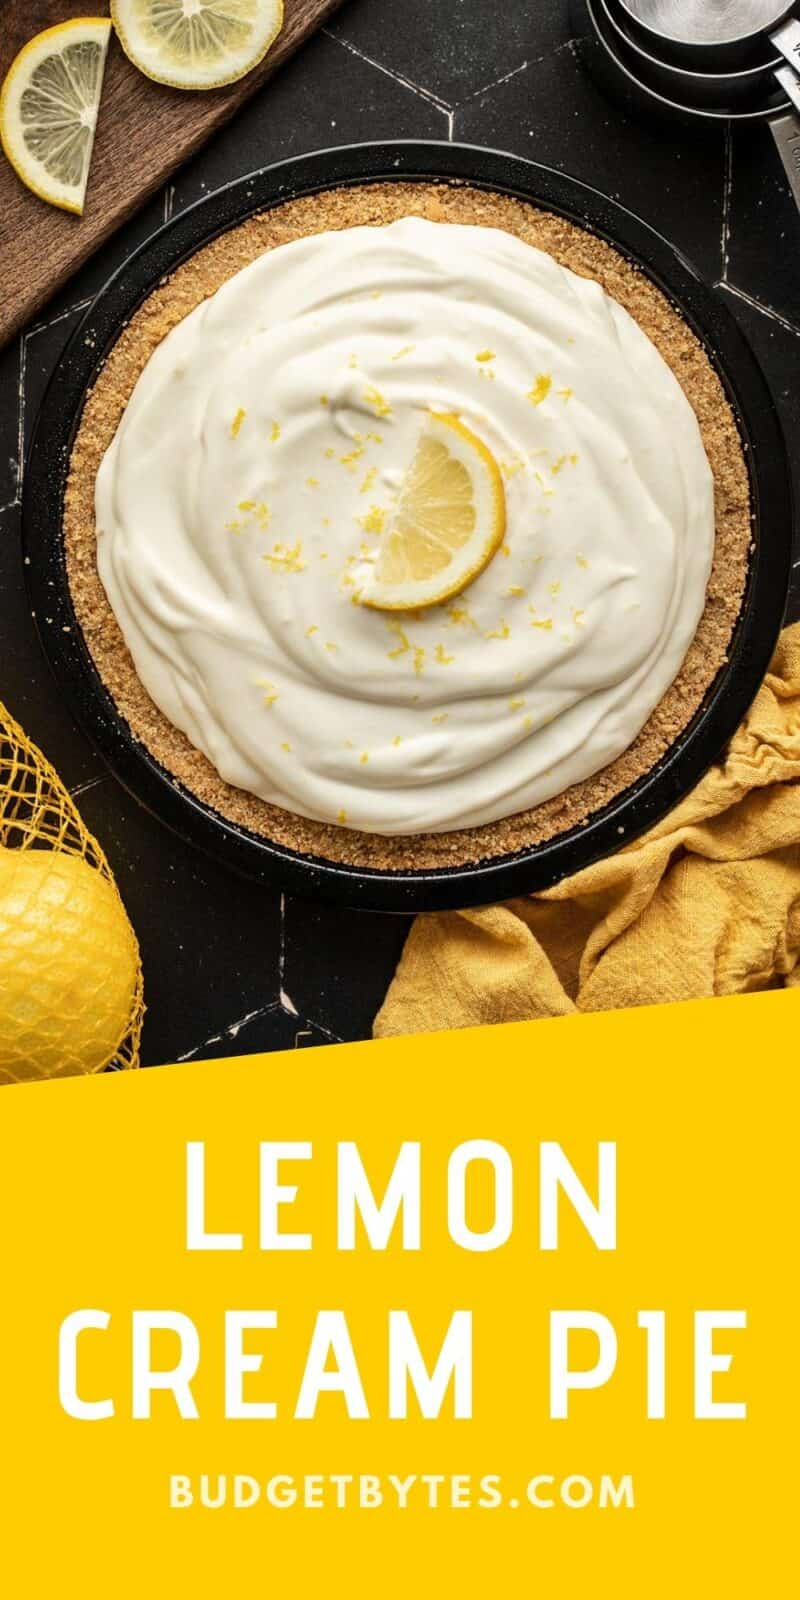 Overhead view of a lemon cream pie with title text at the bottom